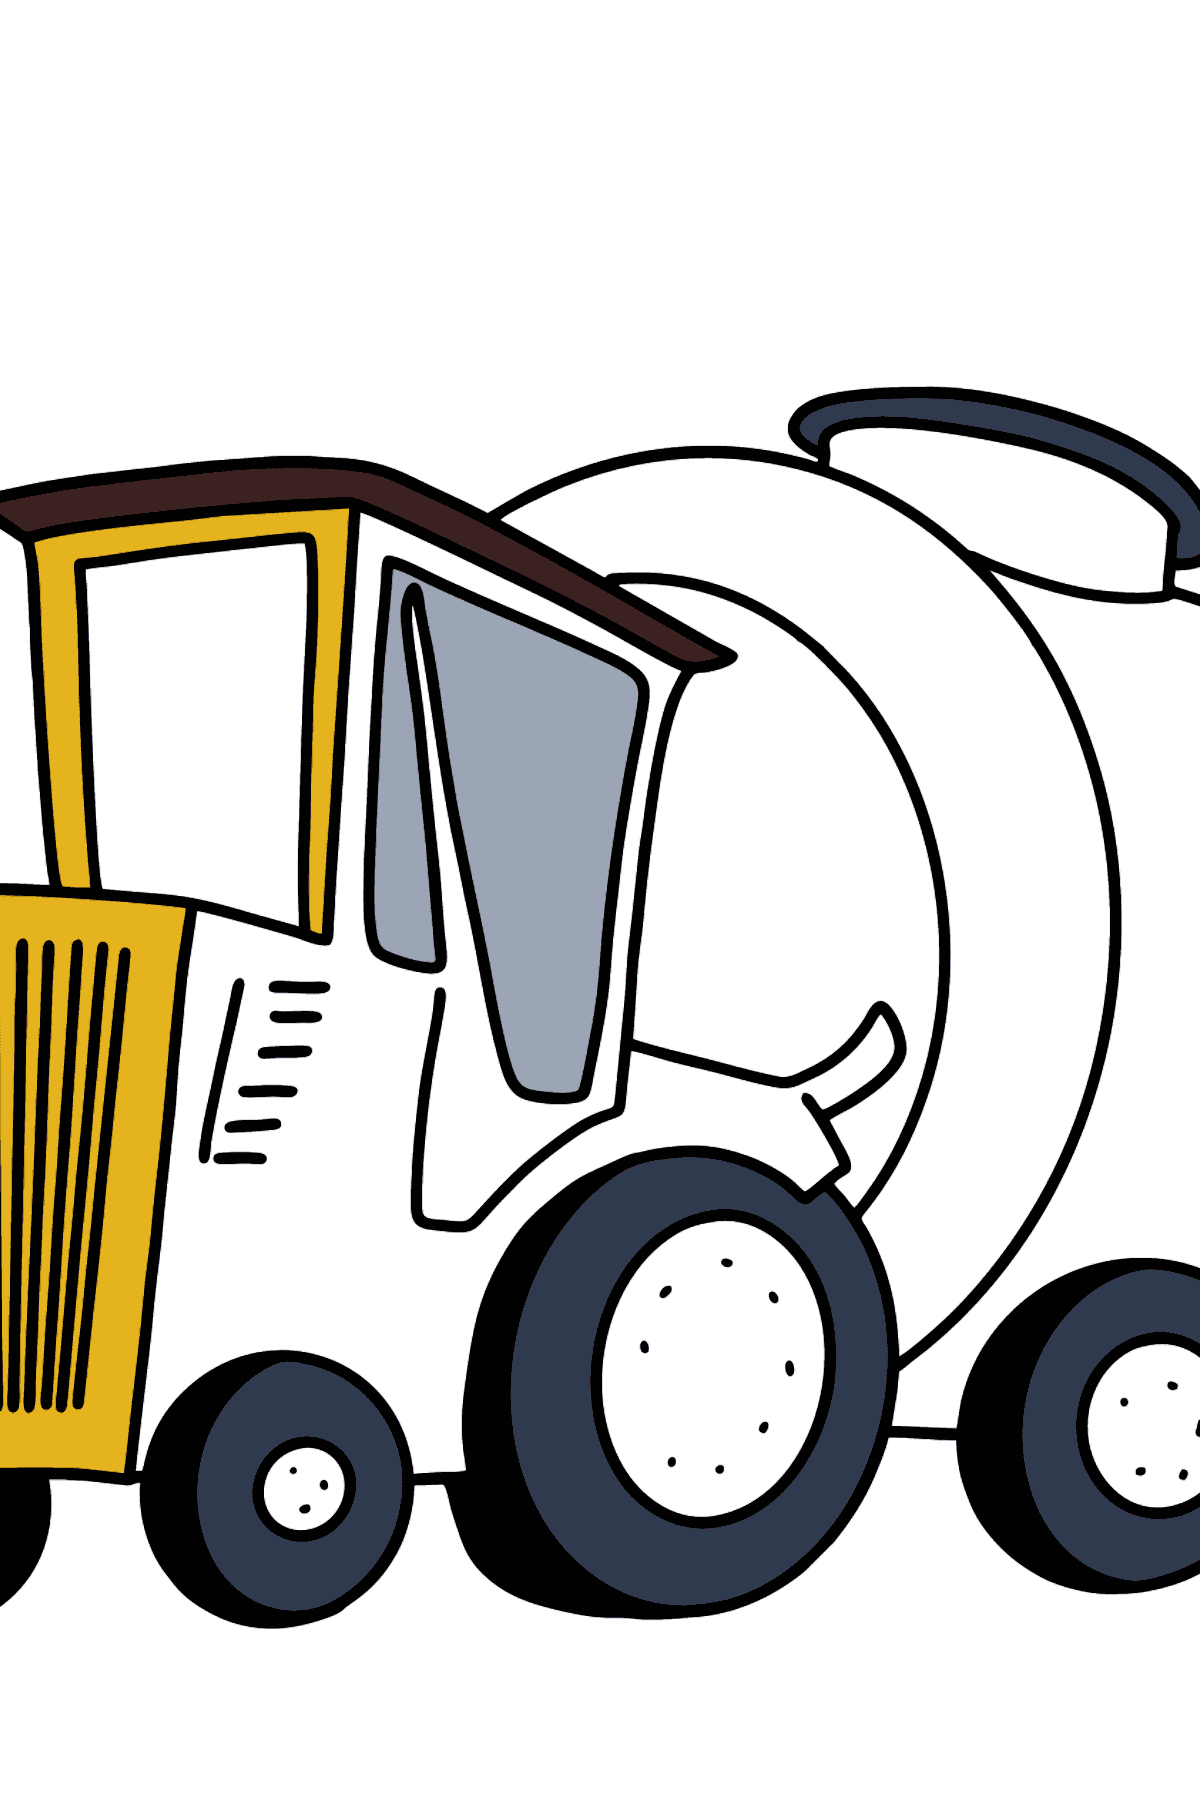 Tractor with Water Trailer coloring page - Coloring Pages for Kids